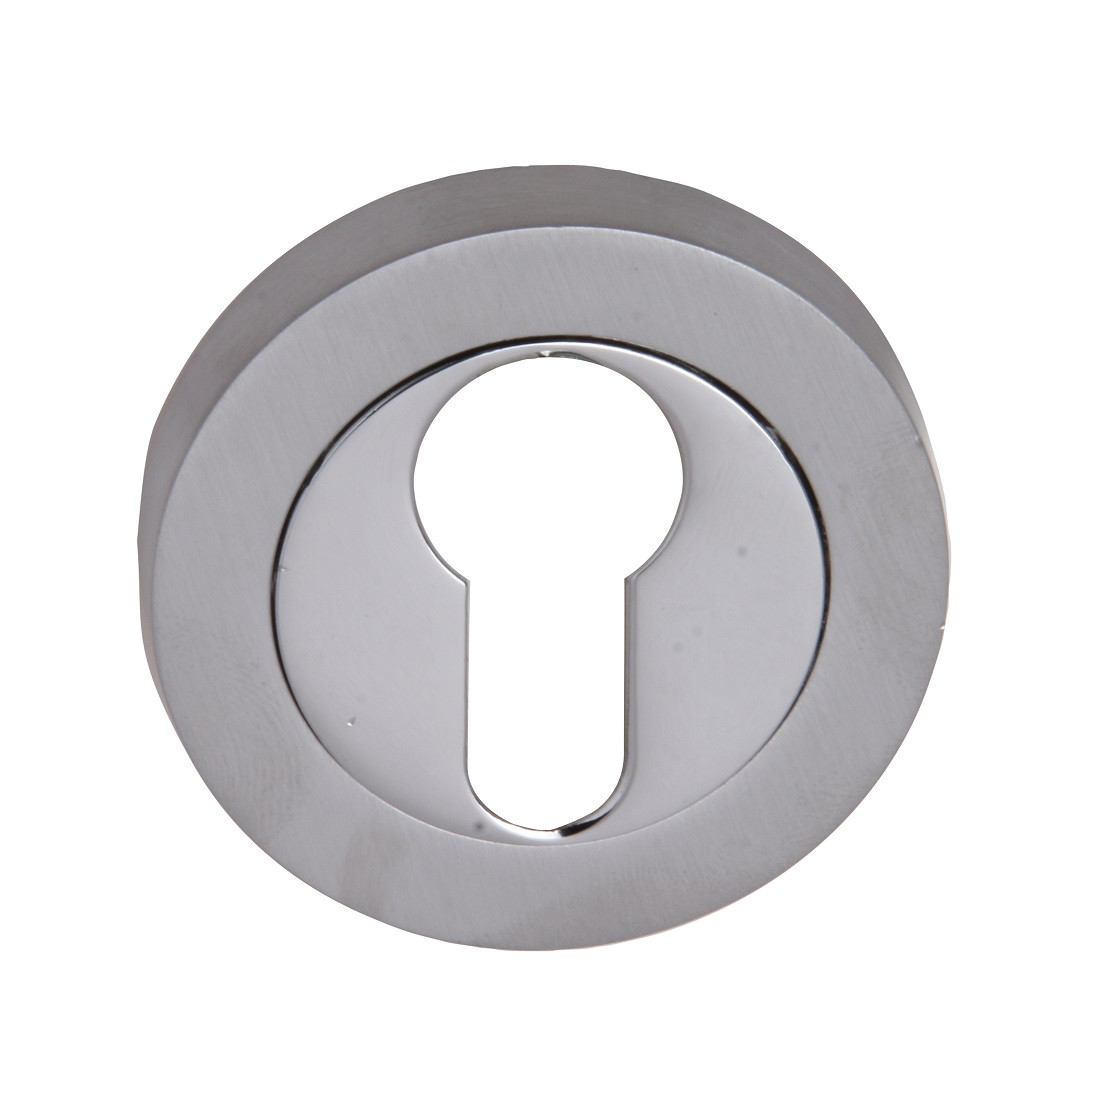 Fortessa Euro Profile Round Escutcheon (pair) - Satin & Polished Chrome Dual Finish